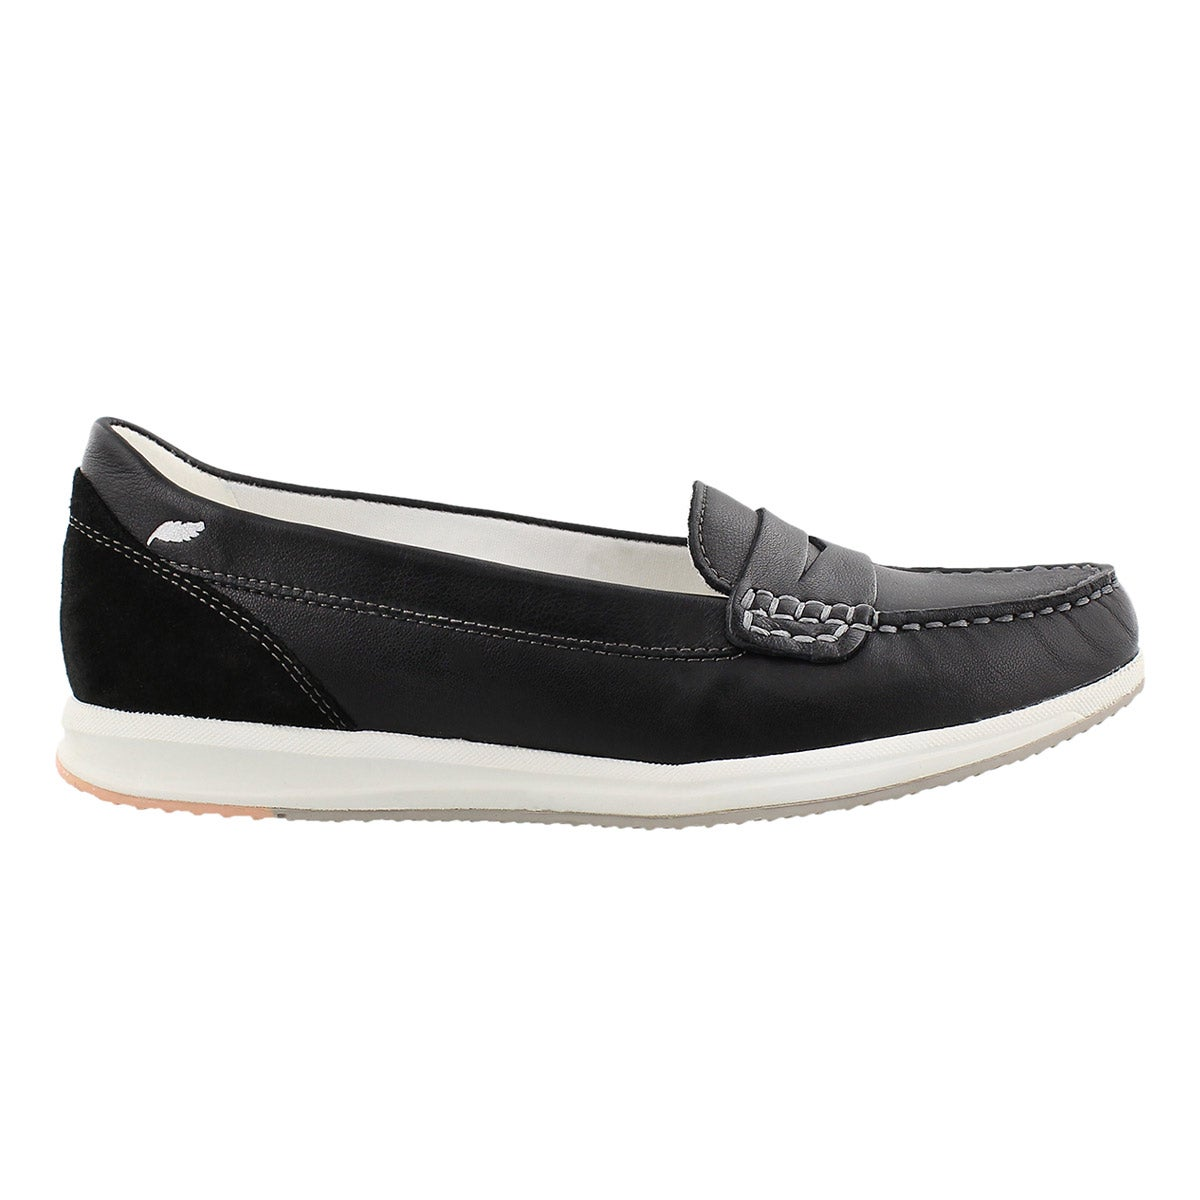 Lds Avery black slip on casual loafer